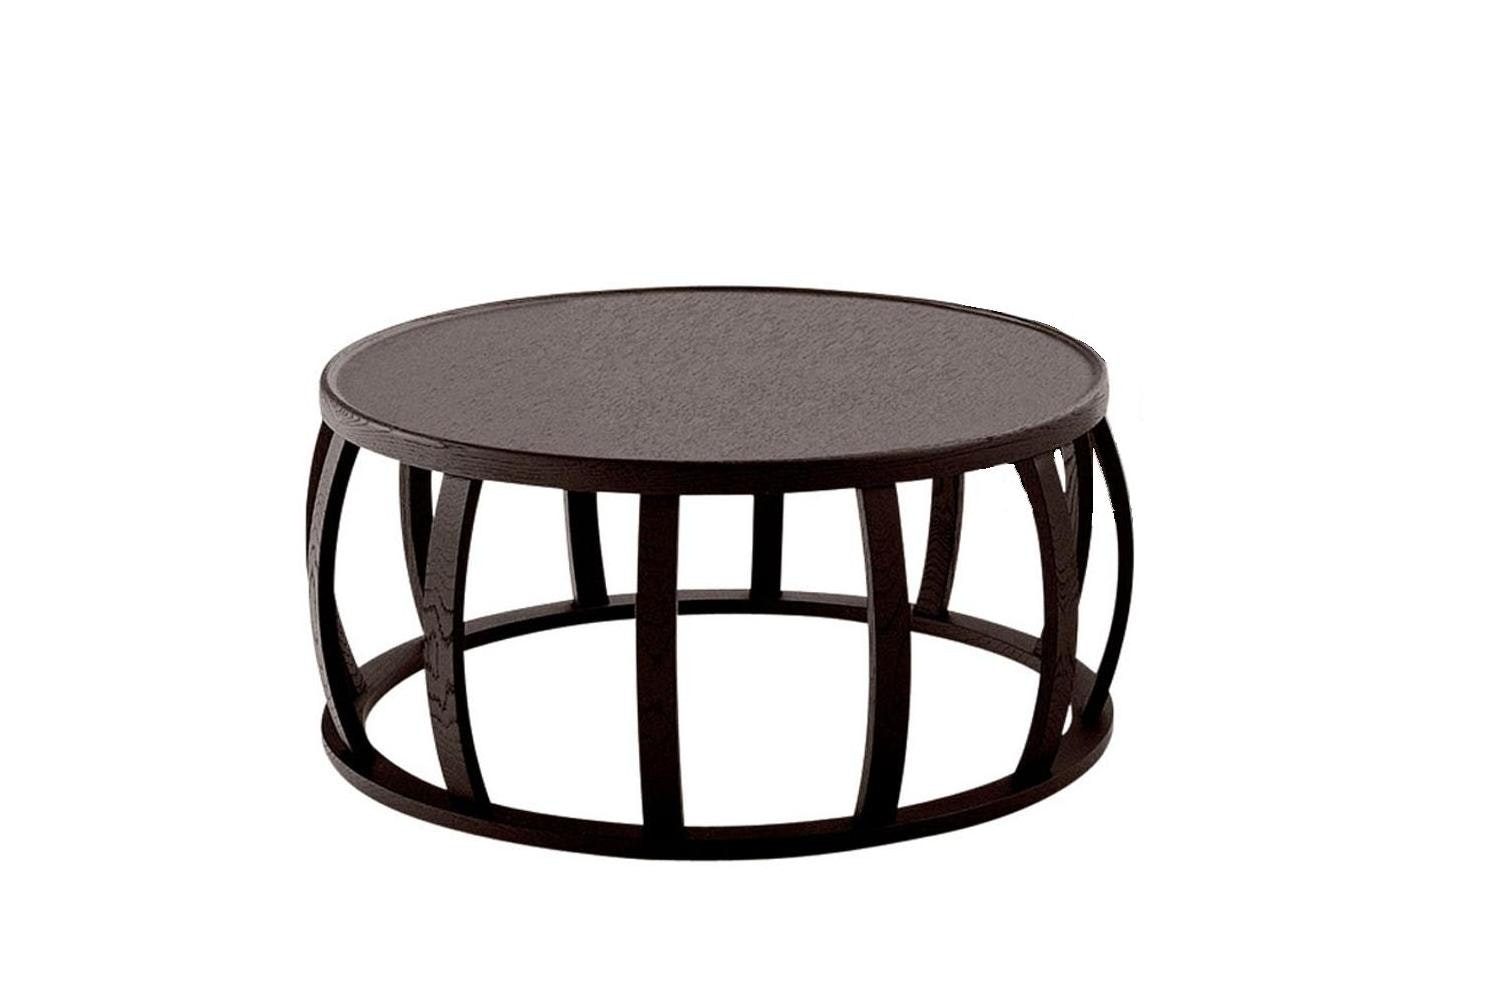 Loto Coffee Table by Antonio Citterio for Maxalto